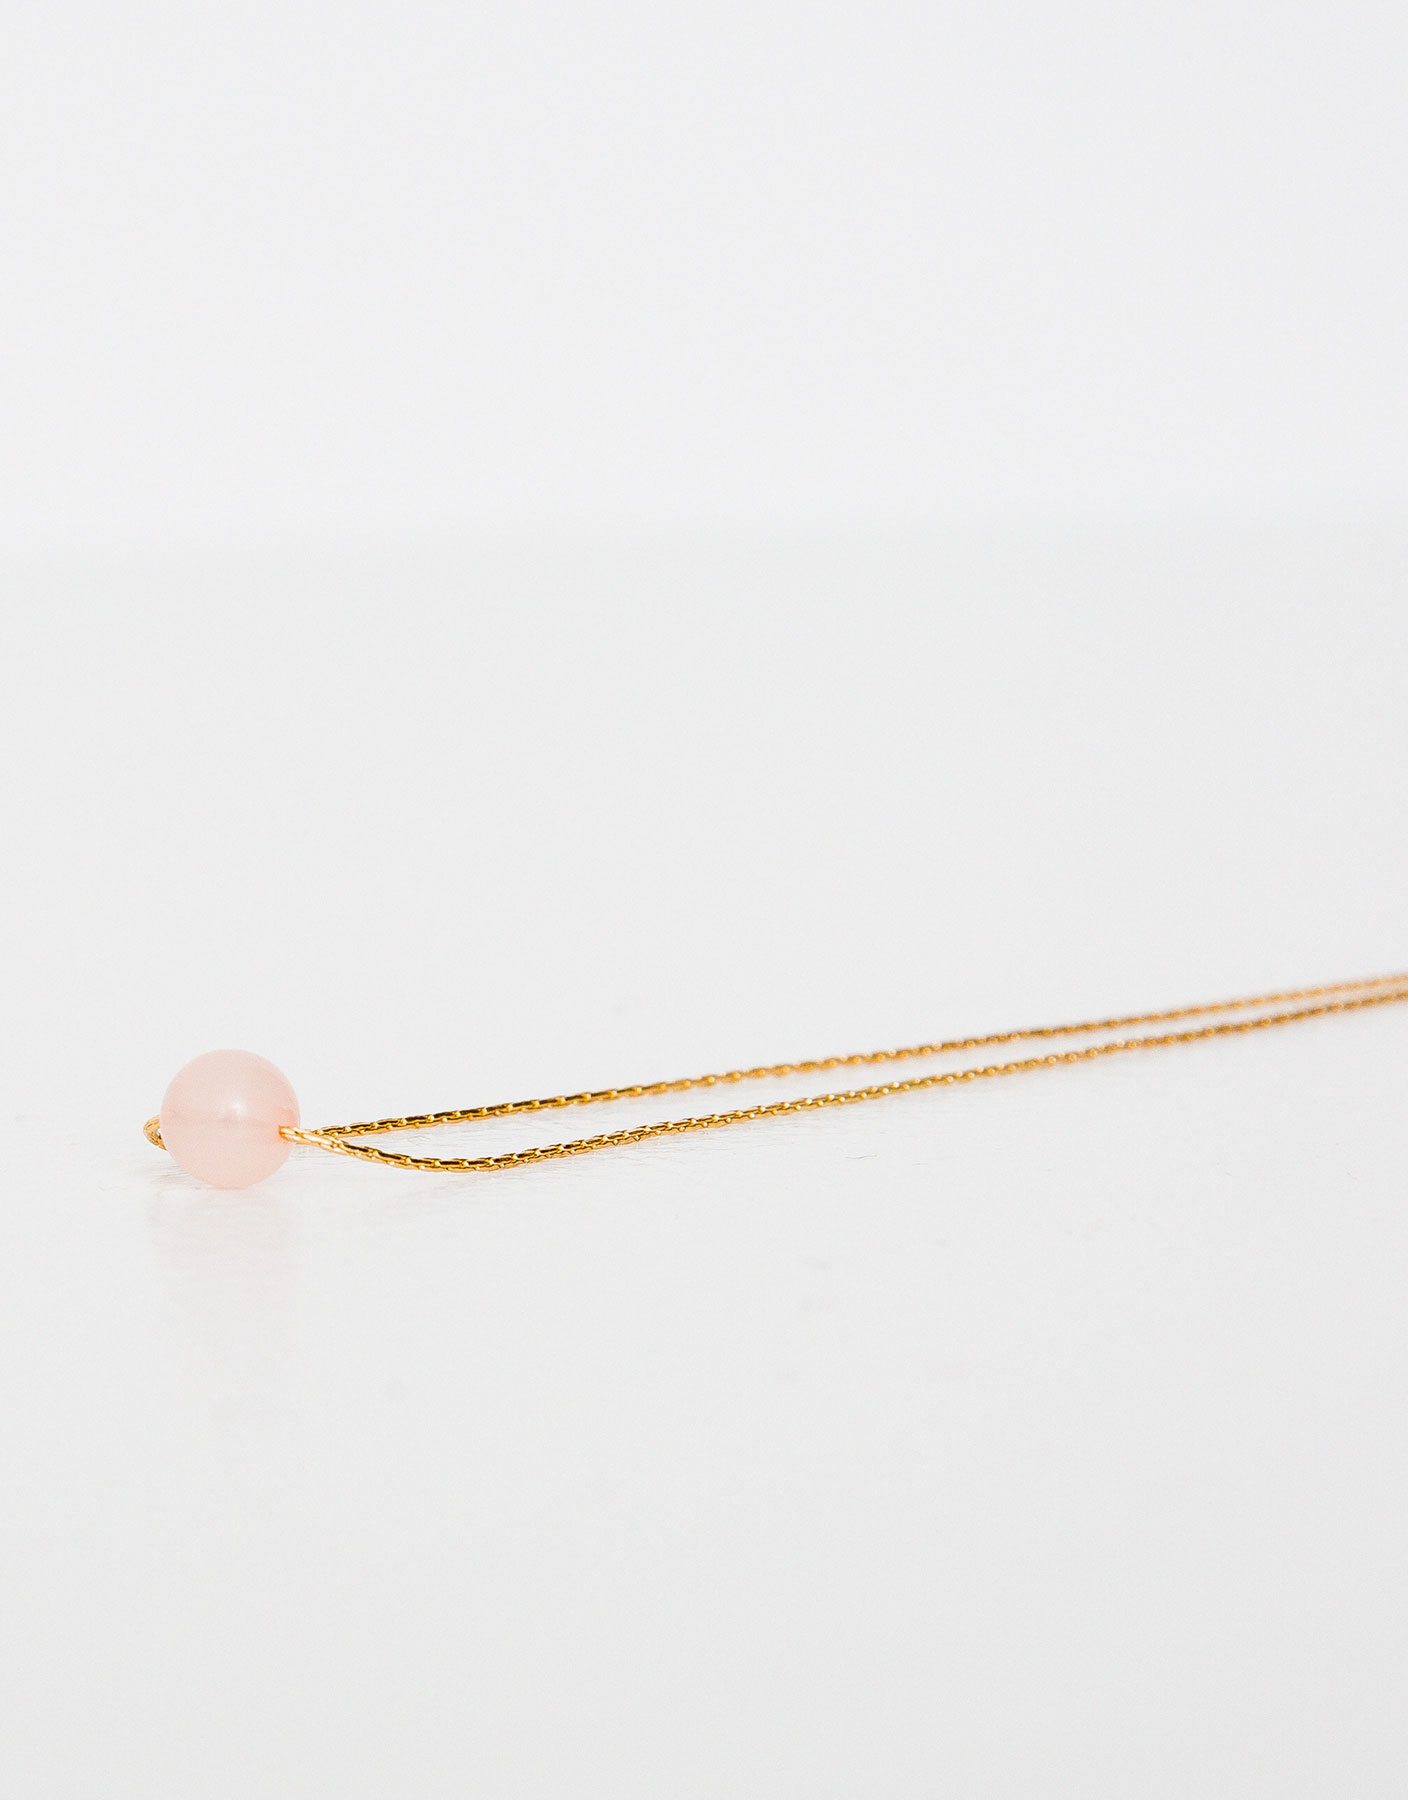 Thin necklace with quartz stone